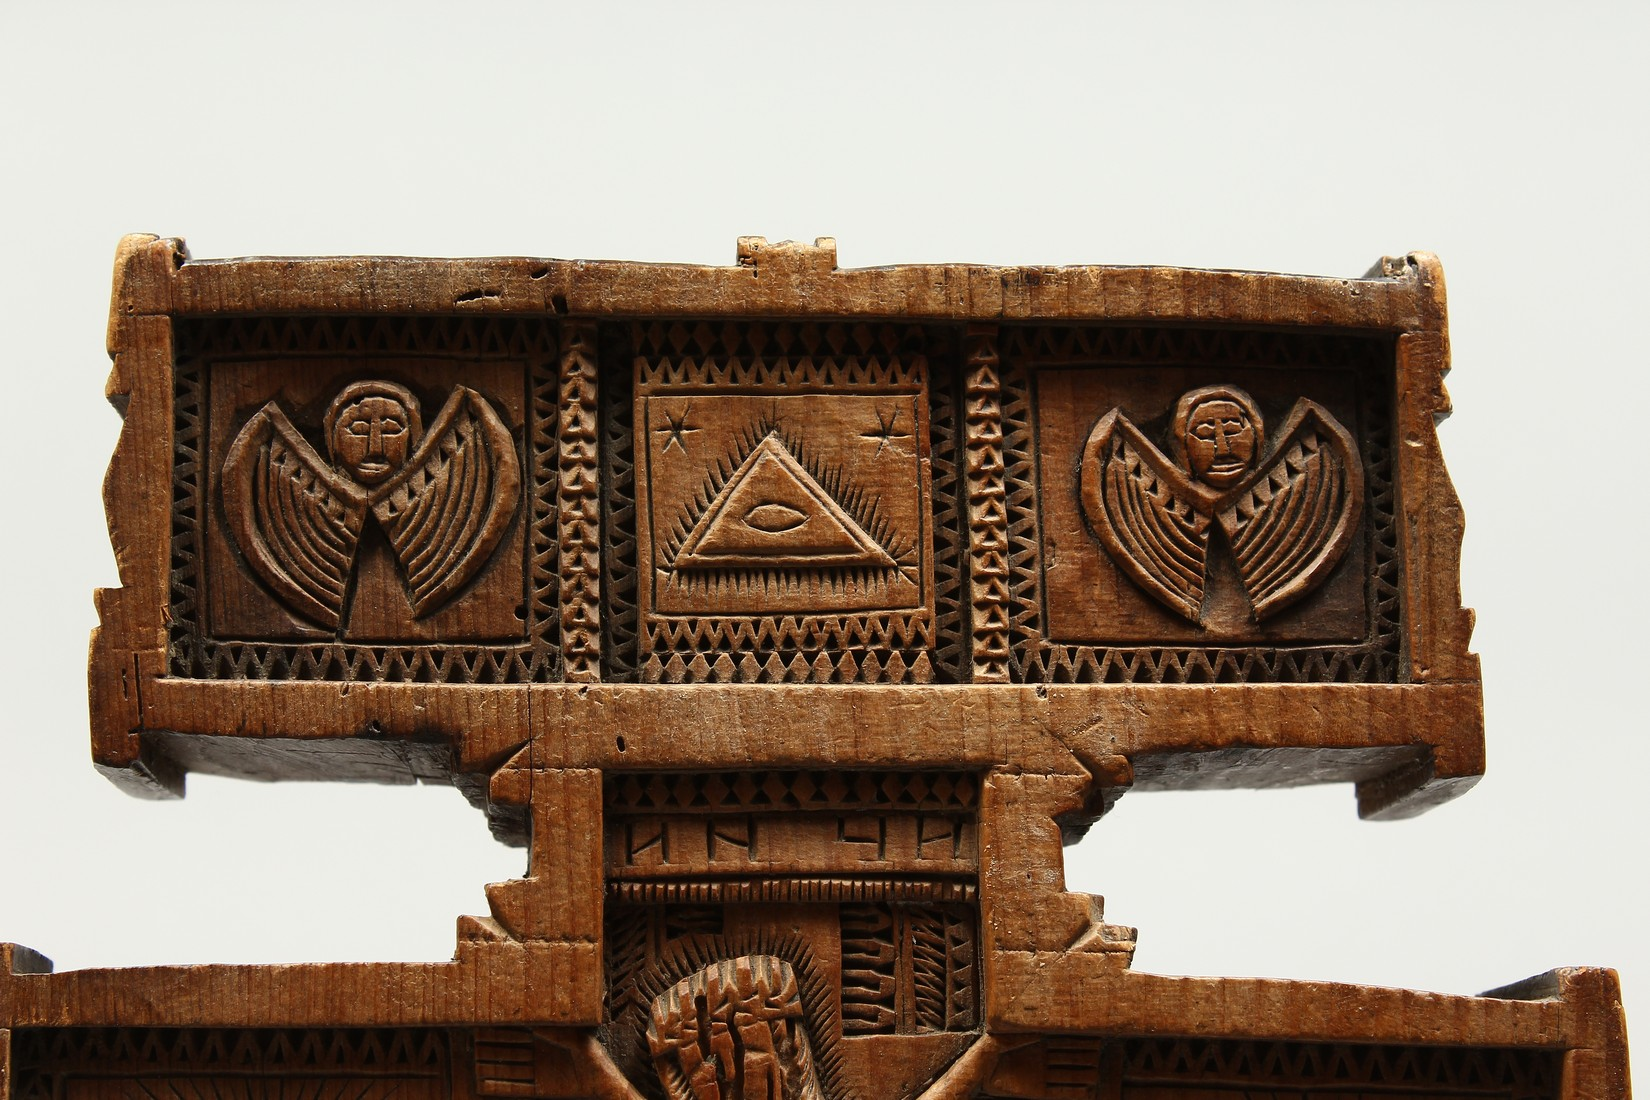 AN 18TH CENTURY GREEK CARVED WOODEN CROSS. 15ins long. - Image 7 of 11